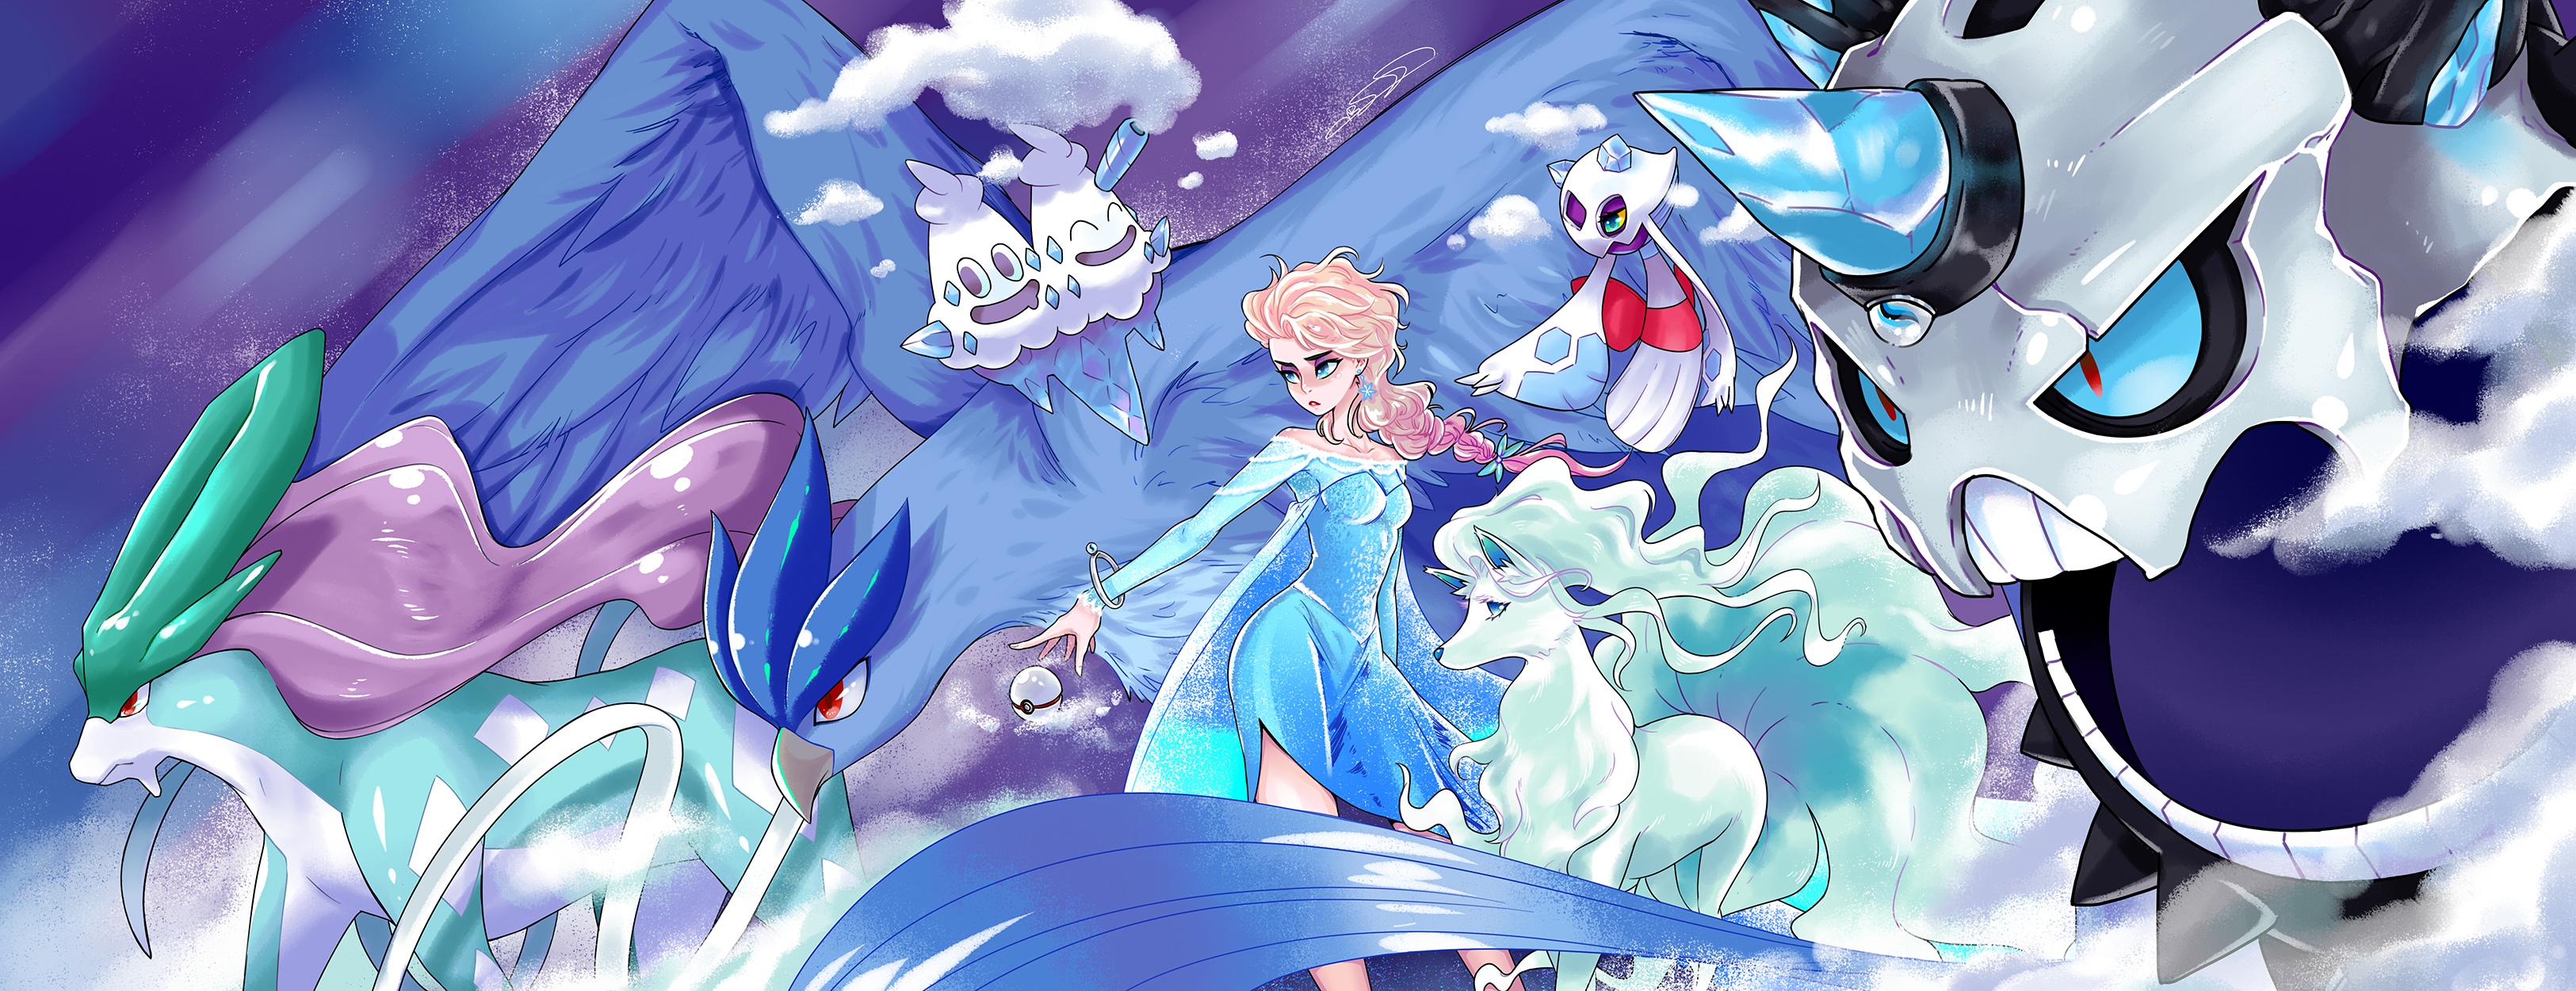 POKEMON - Princess Elsa team by taitsujin